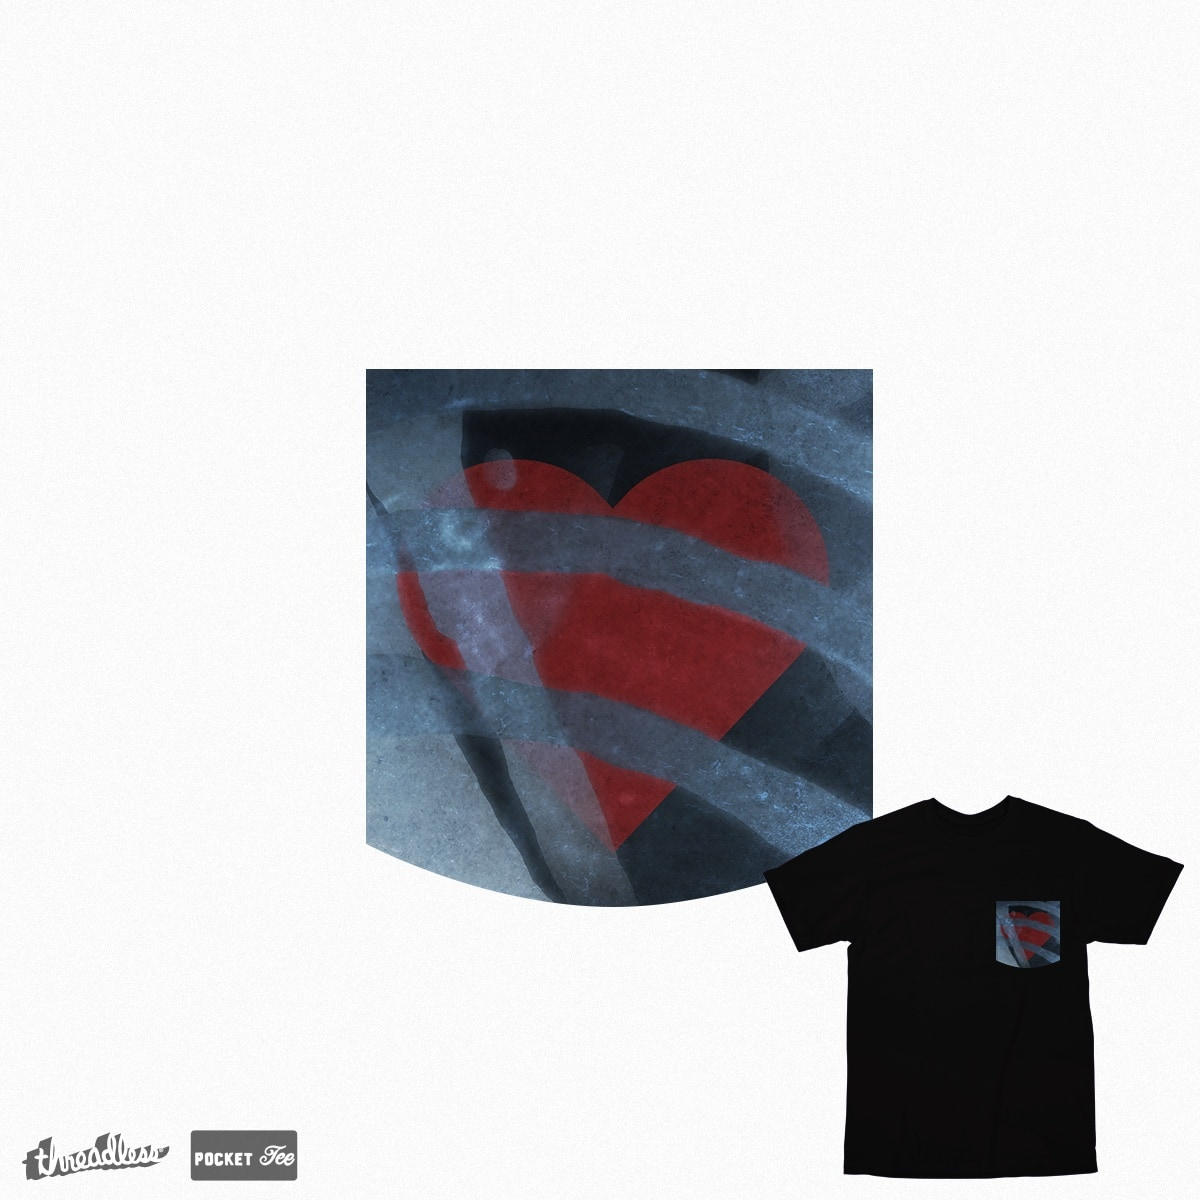 Pocket X-Ray by freakyphil1 on Threadless